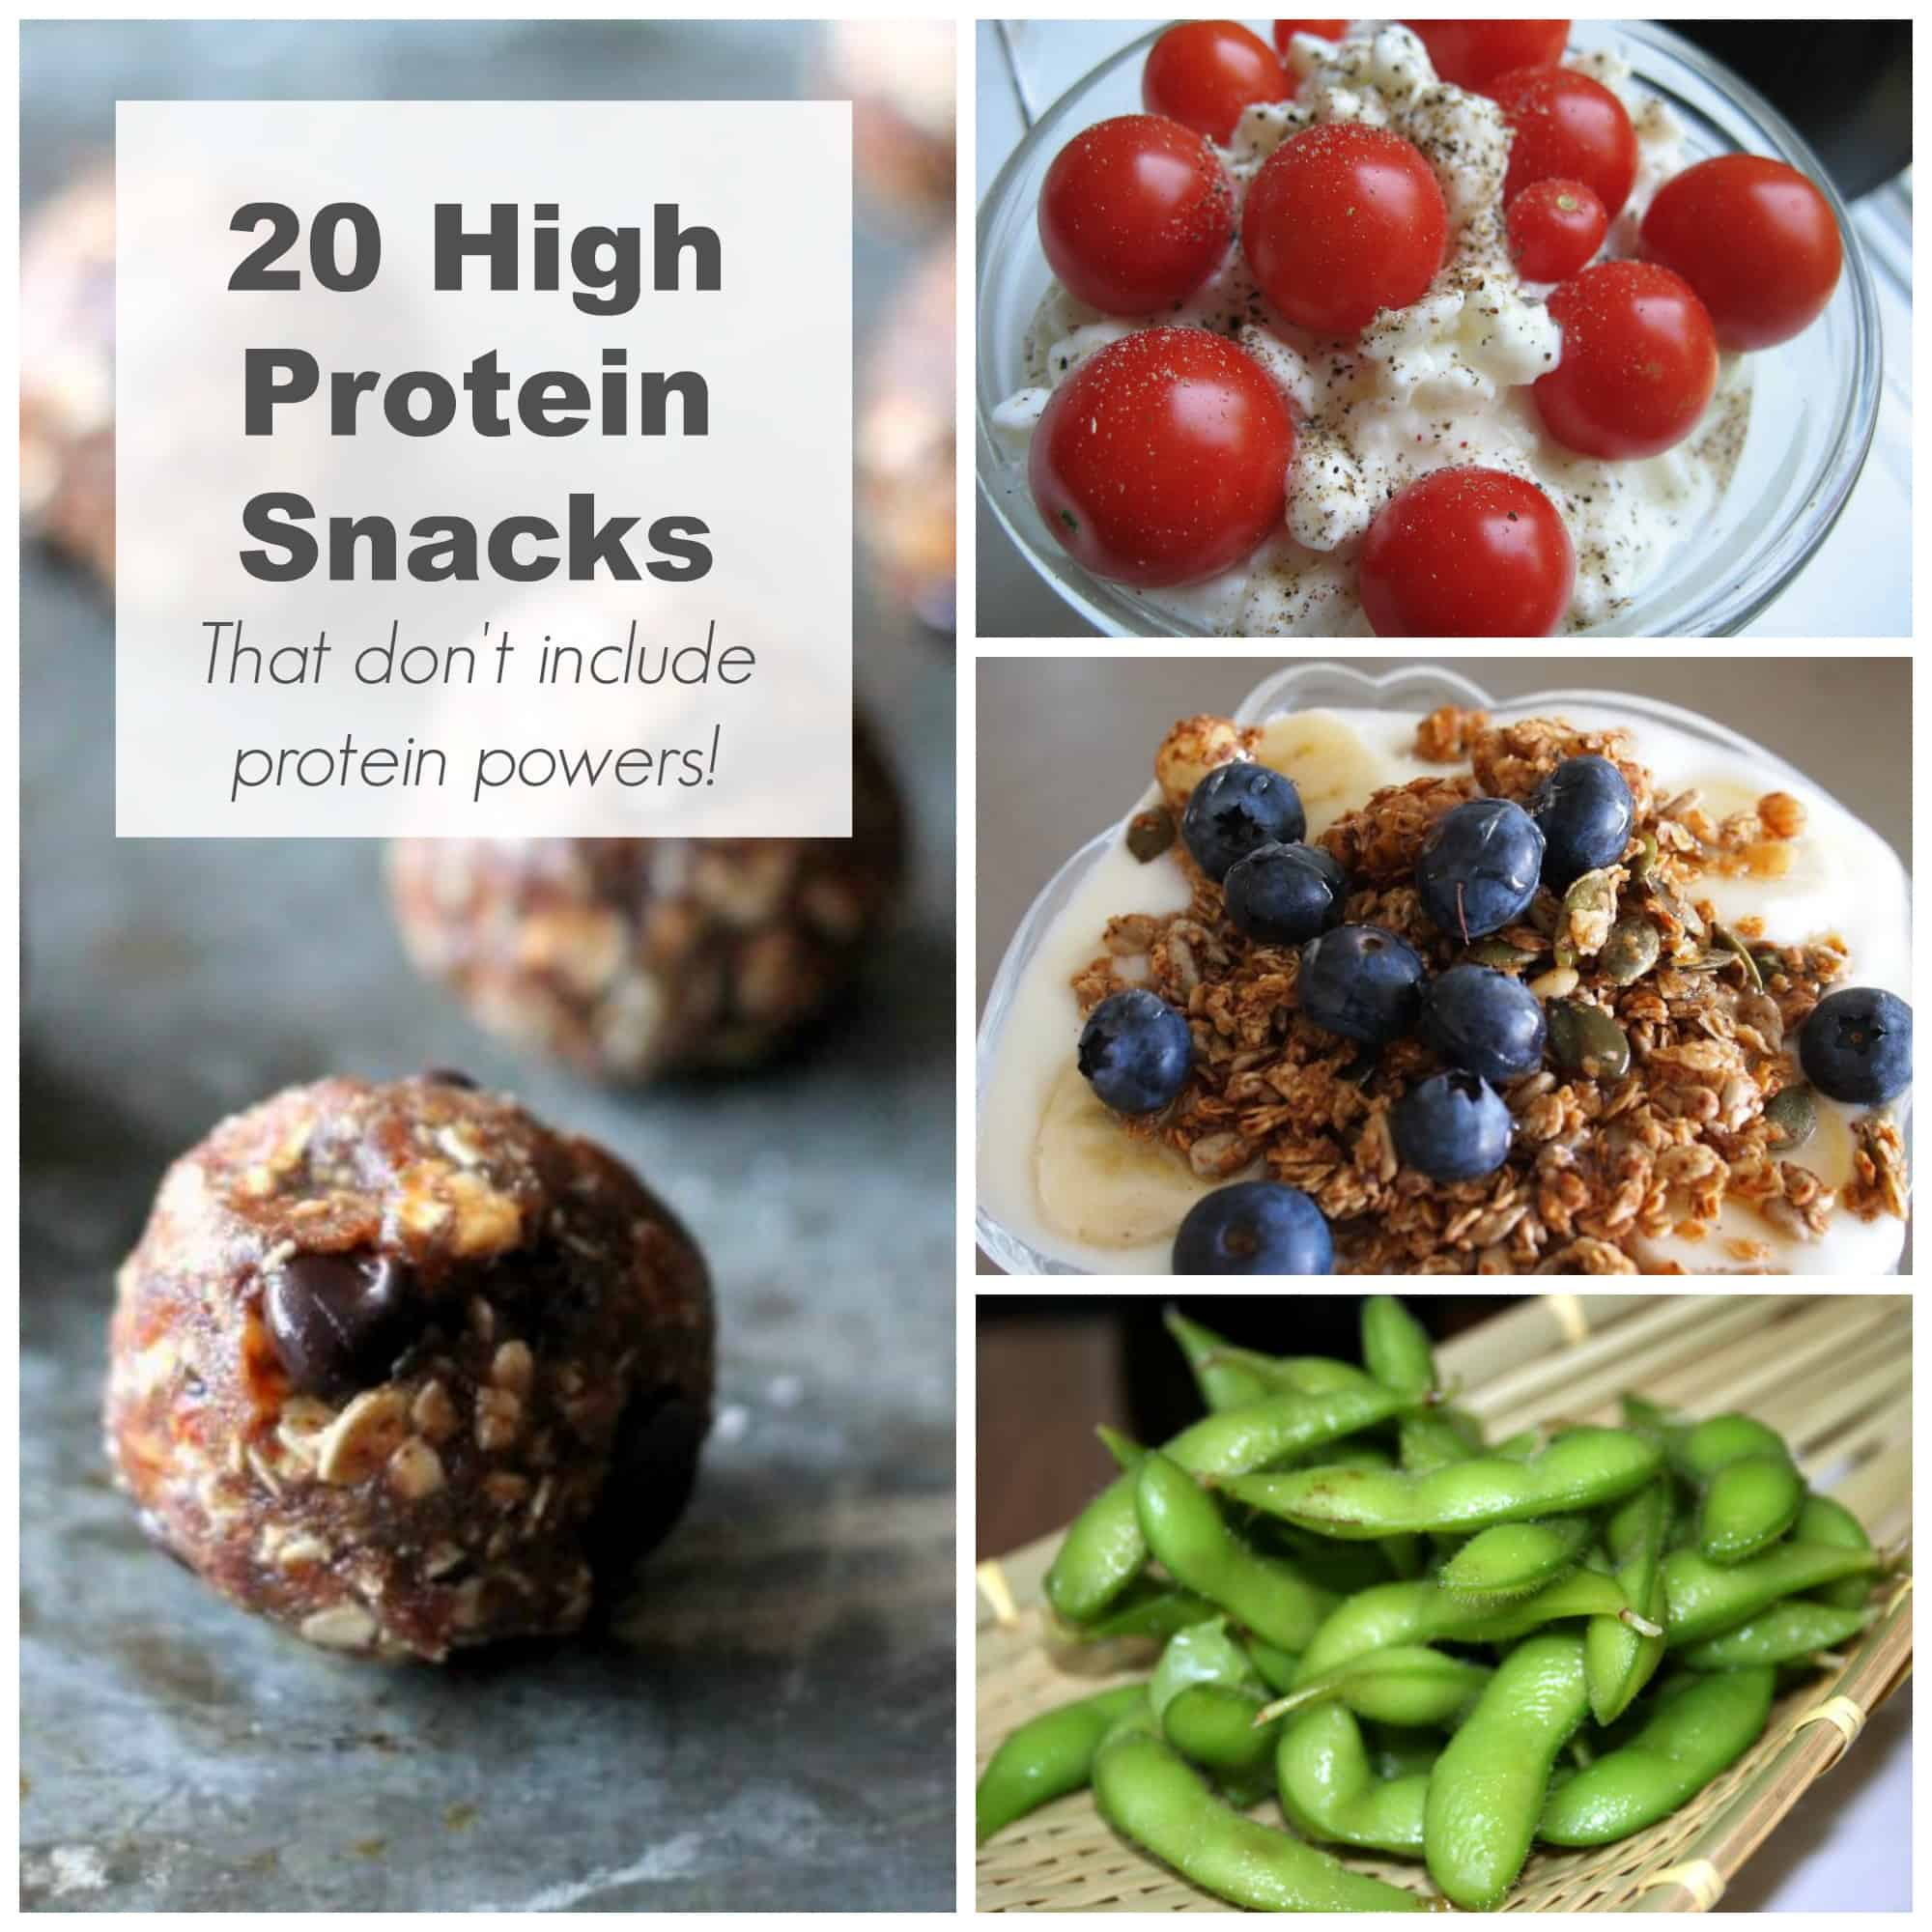 20 High Protein Snack Ideas